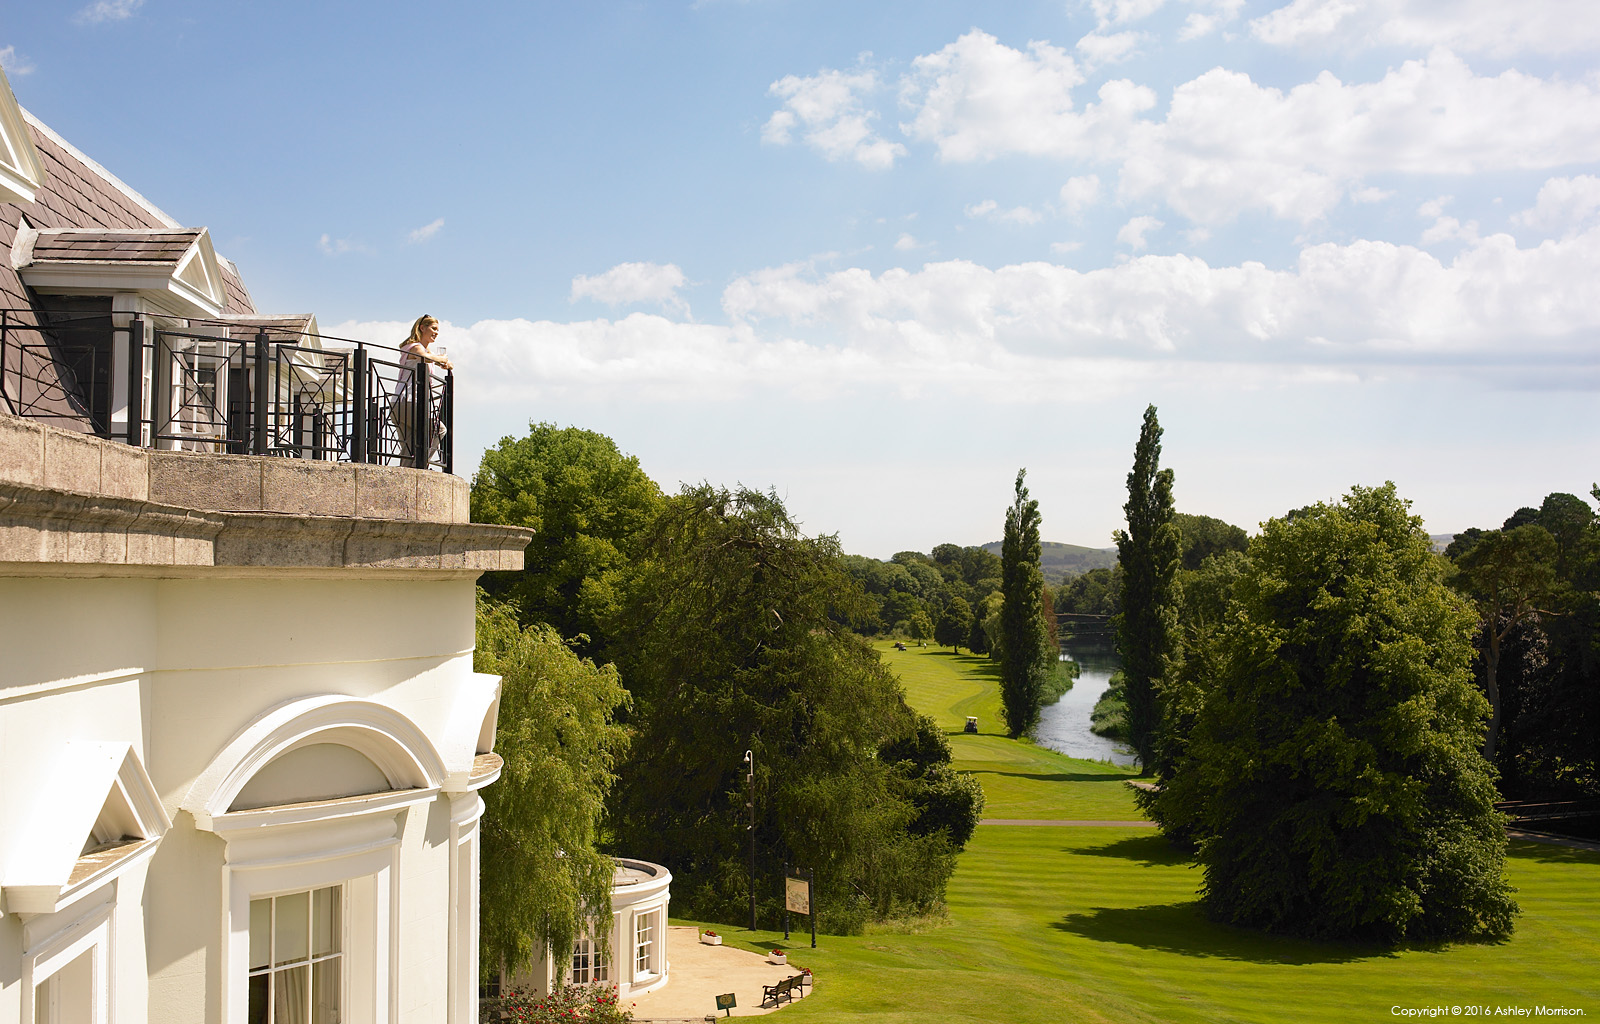 The balcony and view from the Presidential suite at the Kildare Hotel Spa & Golf Club near Straffan in County Kildare.